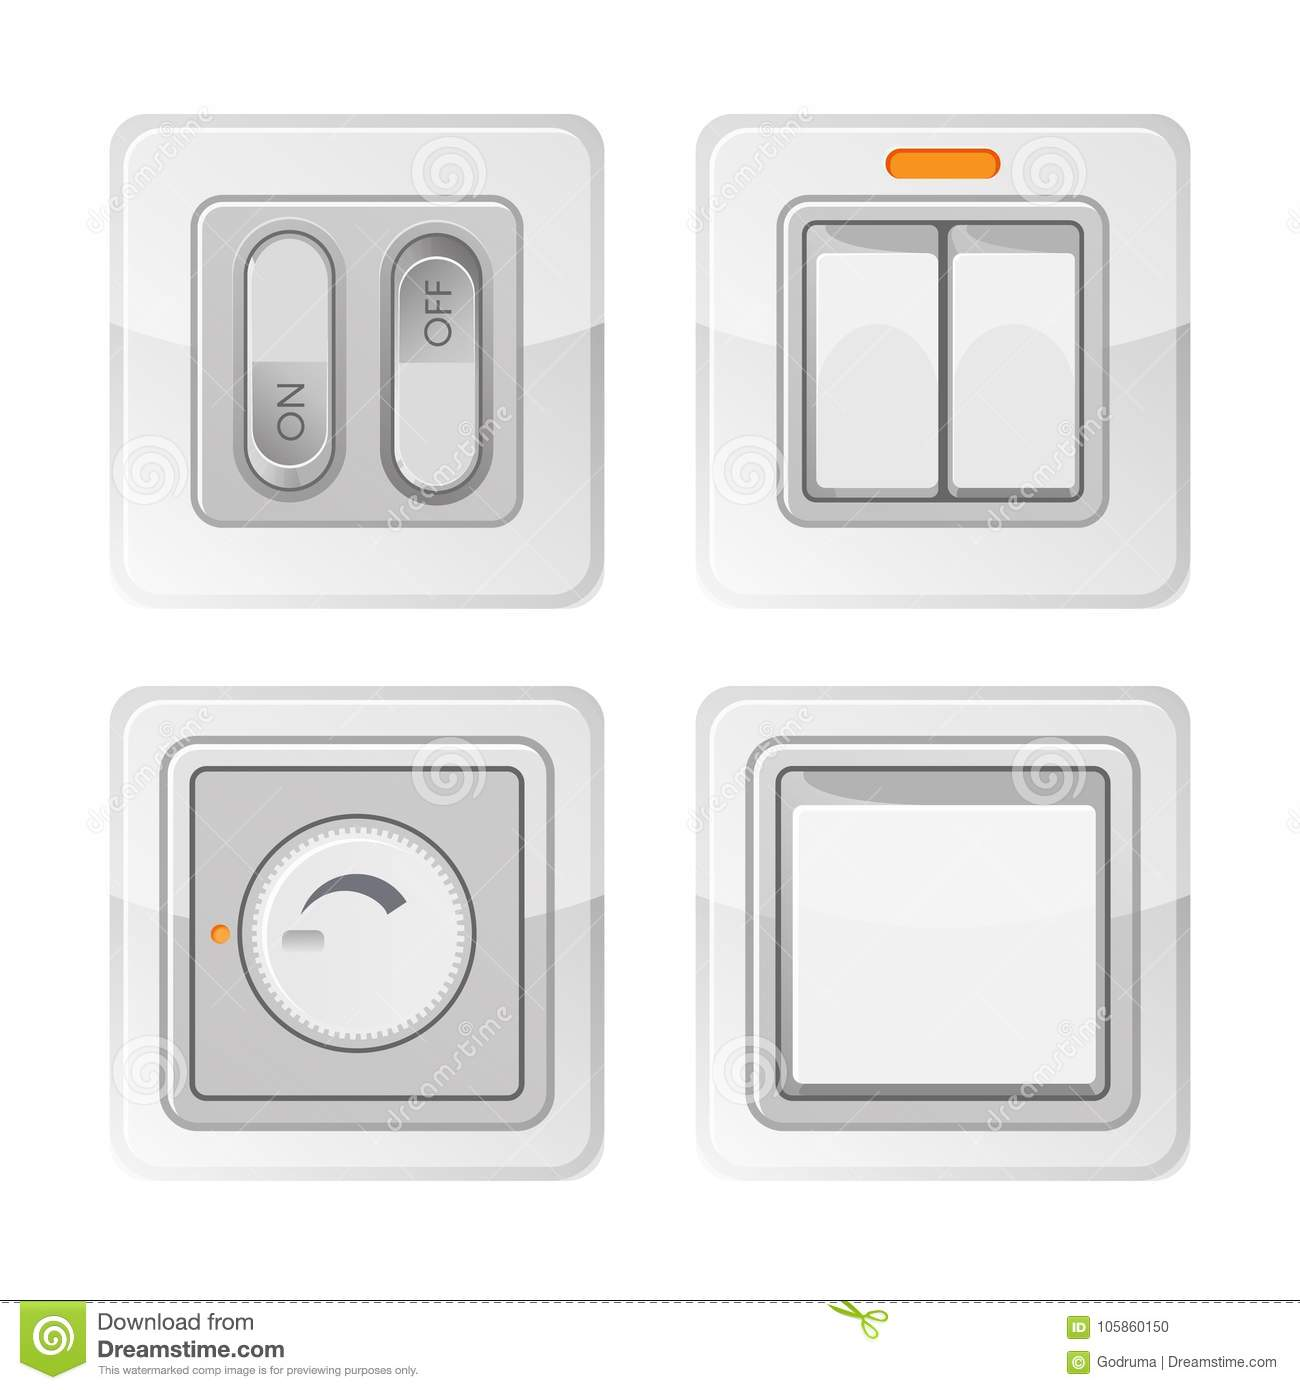 hight resolution of set of electric power switches with on off buttons electrical wiring light switch used to operate lights permanently connected equipment